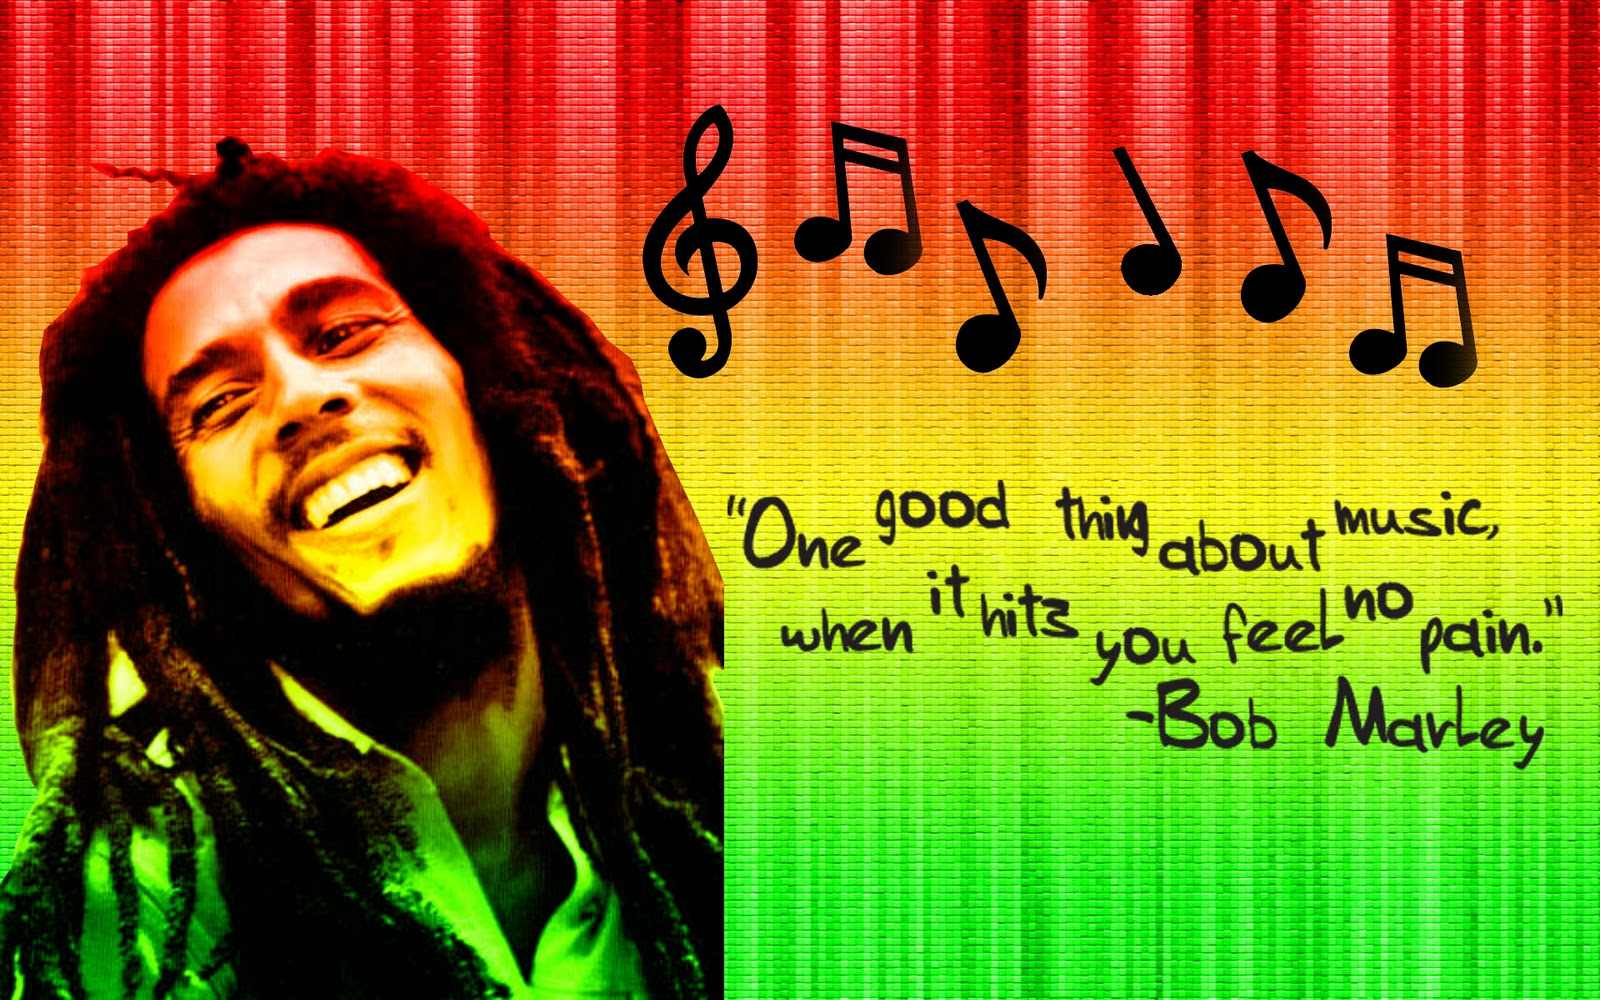 bob marley quotes i love you picture and quotes